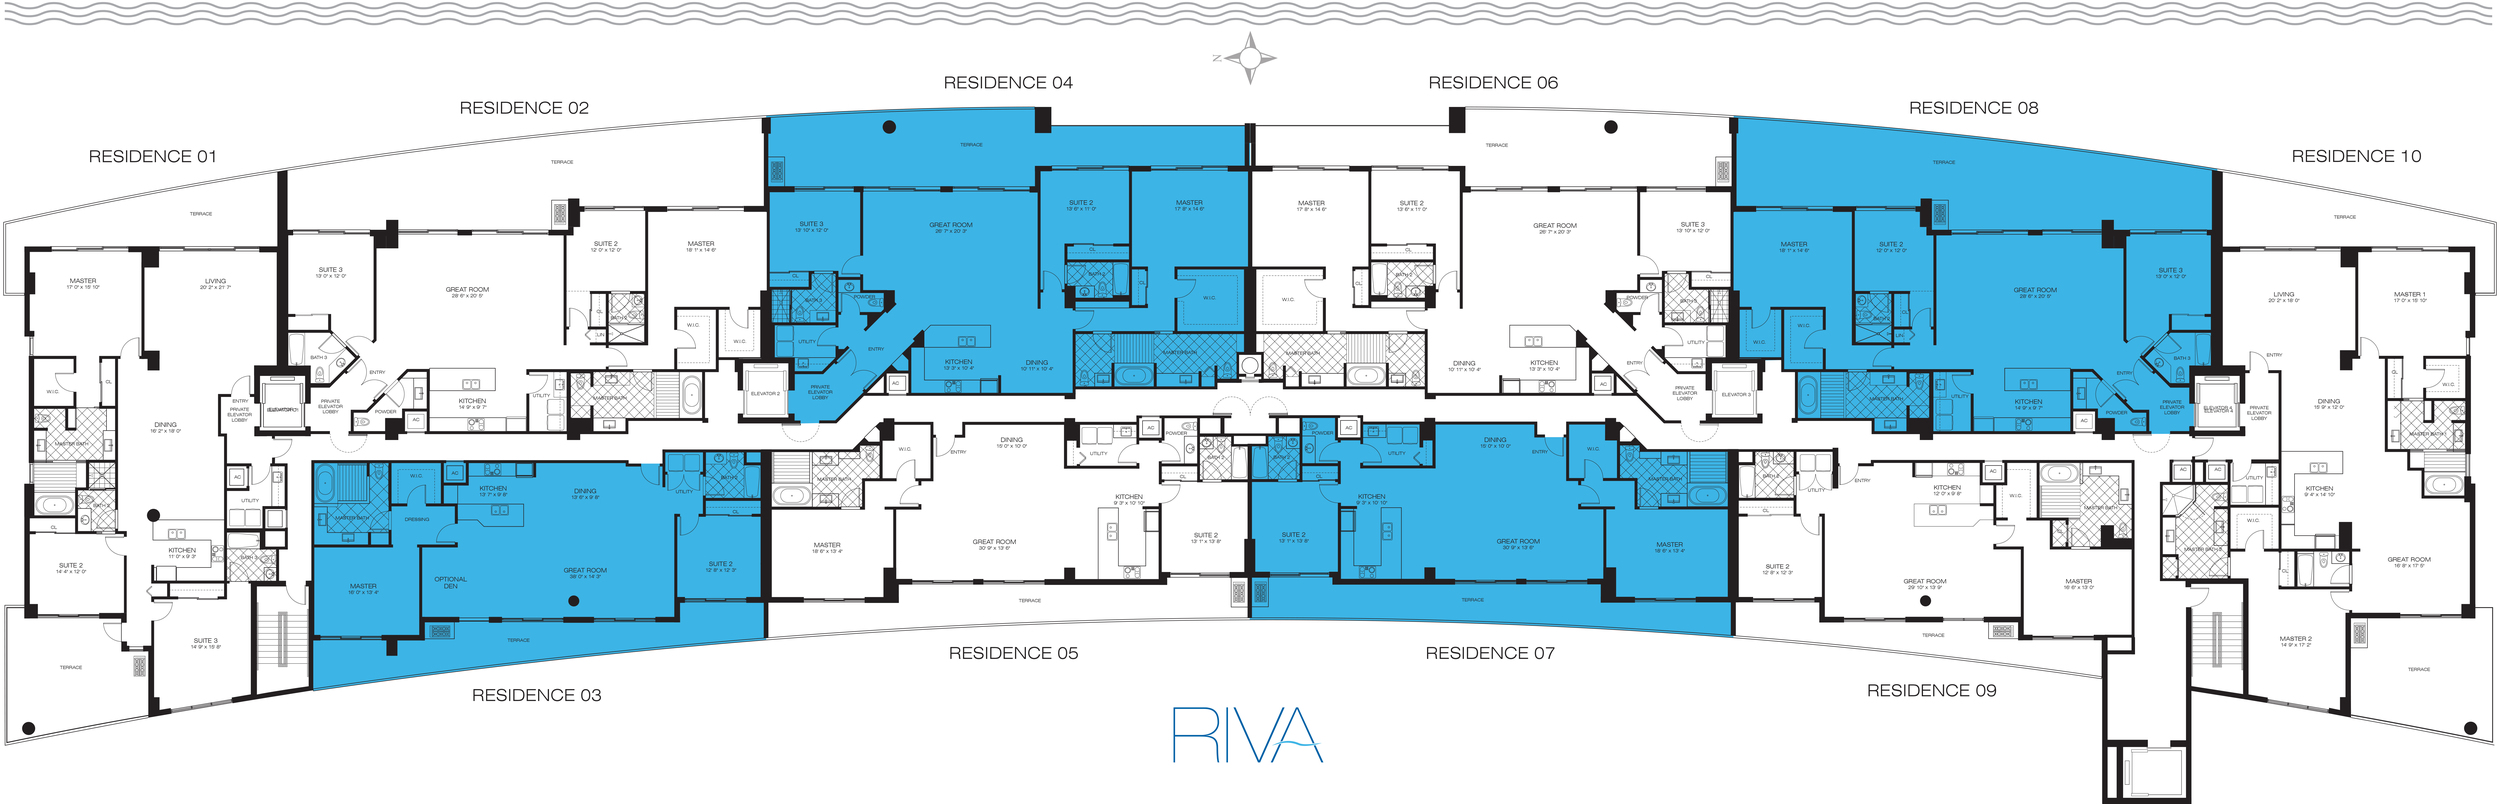 Riva Ft.Lauderdale Condos Key Plan